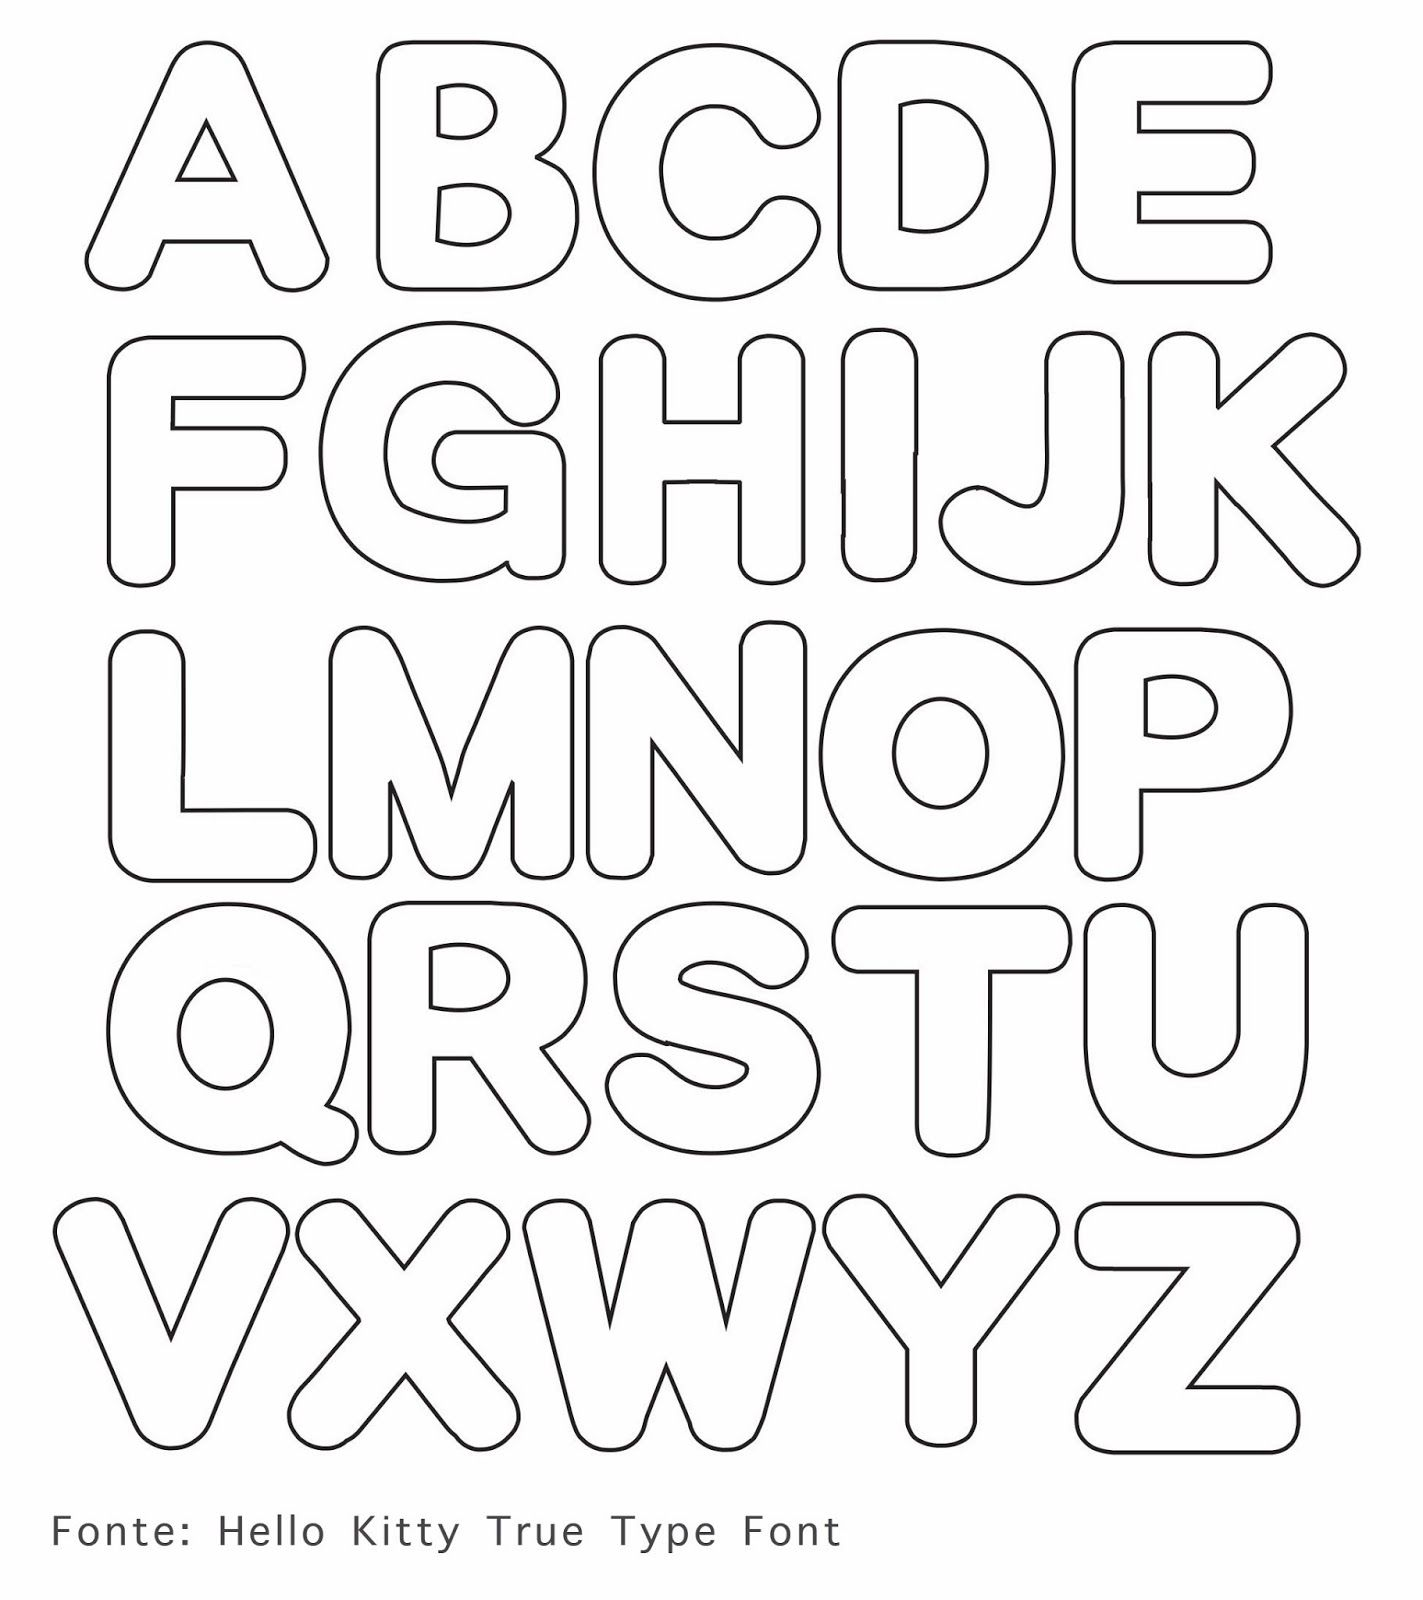 Hello Kitty True Type Font | Fonts and Script | Pinterest ...